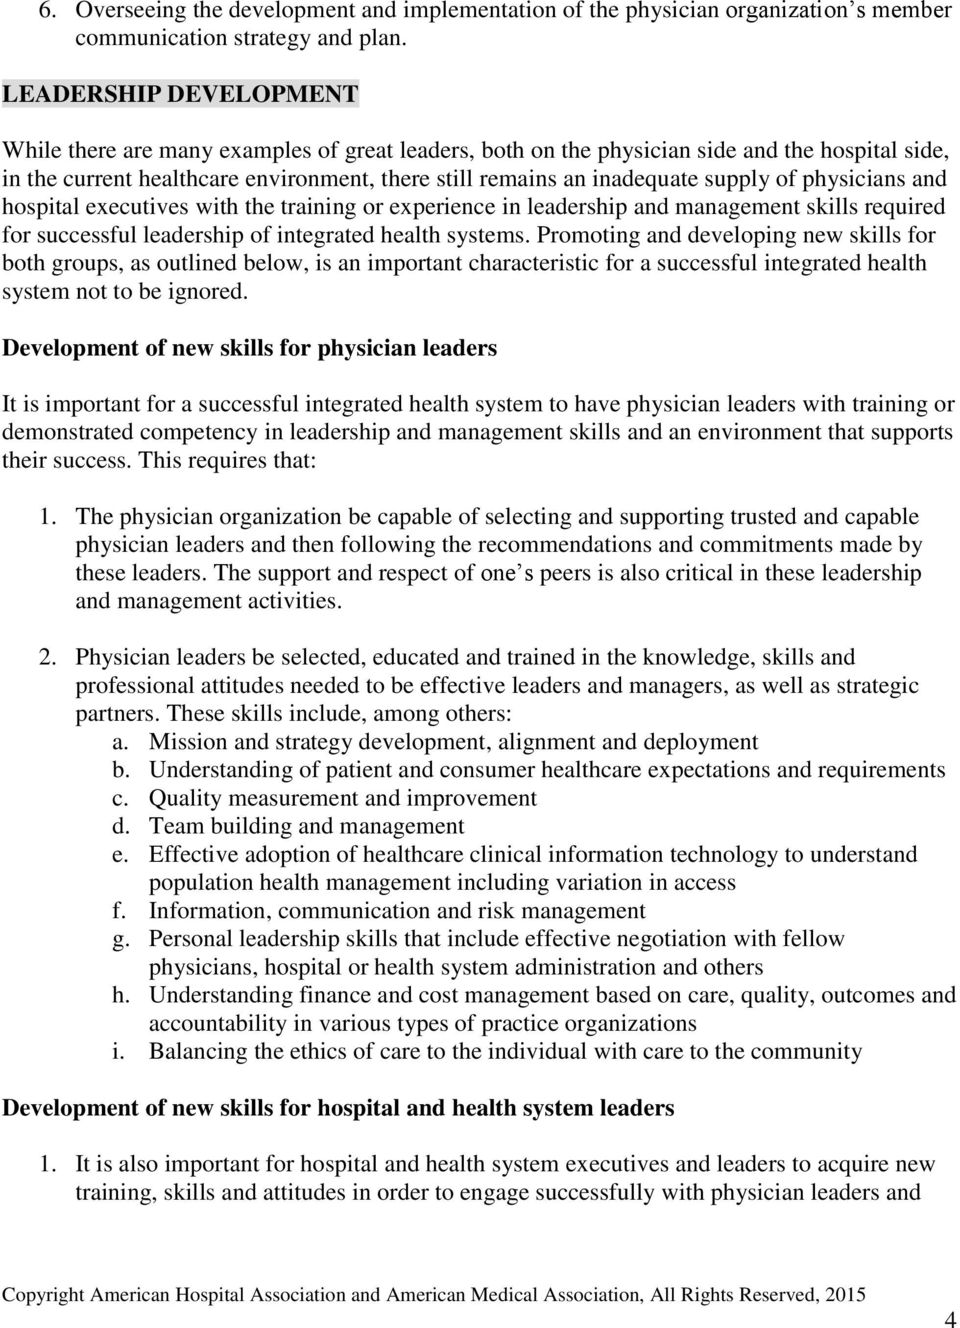 supply of physicians and hospital executives with the training or experience in leadership and management skills required for successful leadership of integrated health systems.